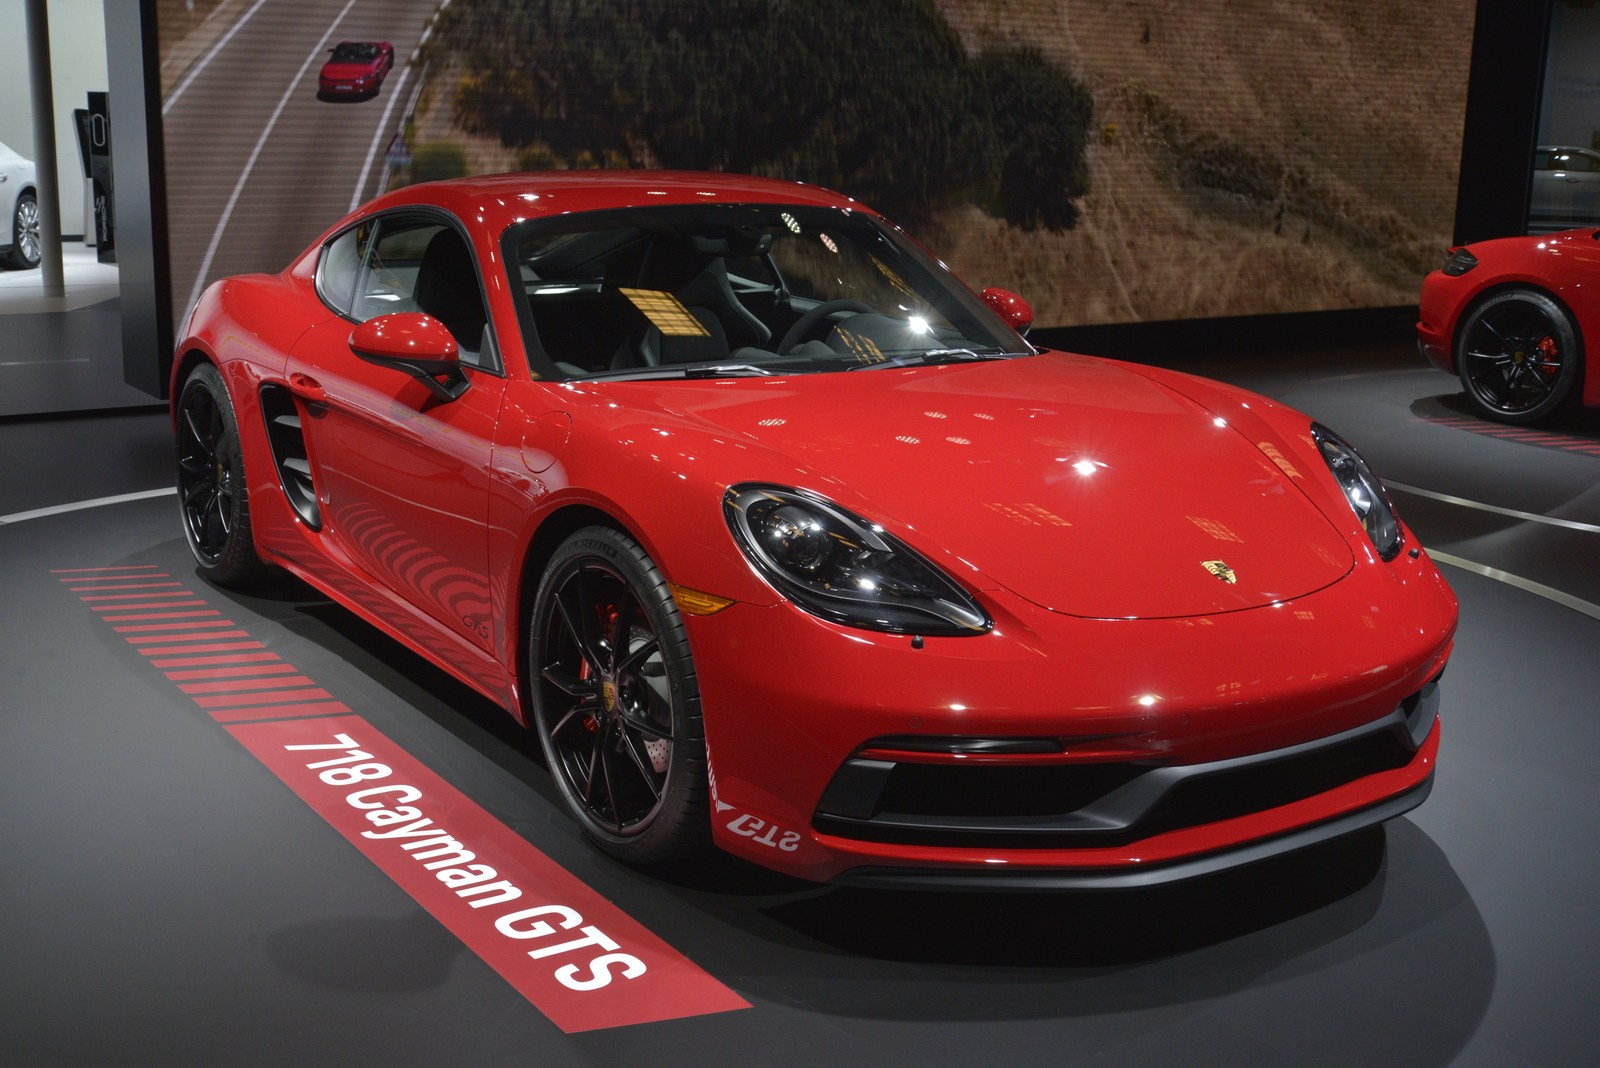 2018 Cayman Gt4 >> Porsche's New Driver-Focused 718 GTS Coupe And Boxster Go To LA | Carscoops